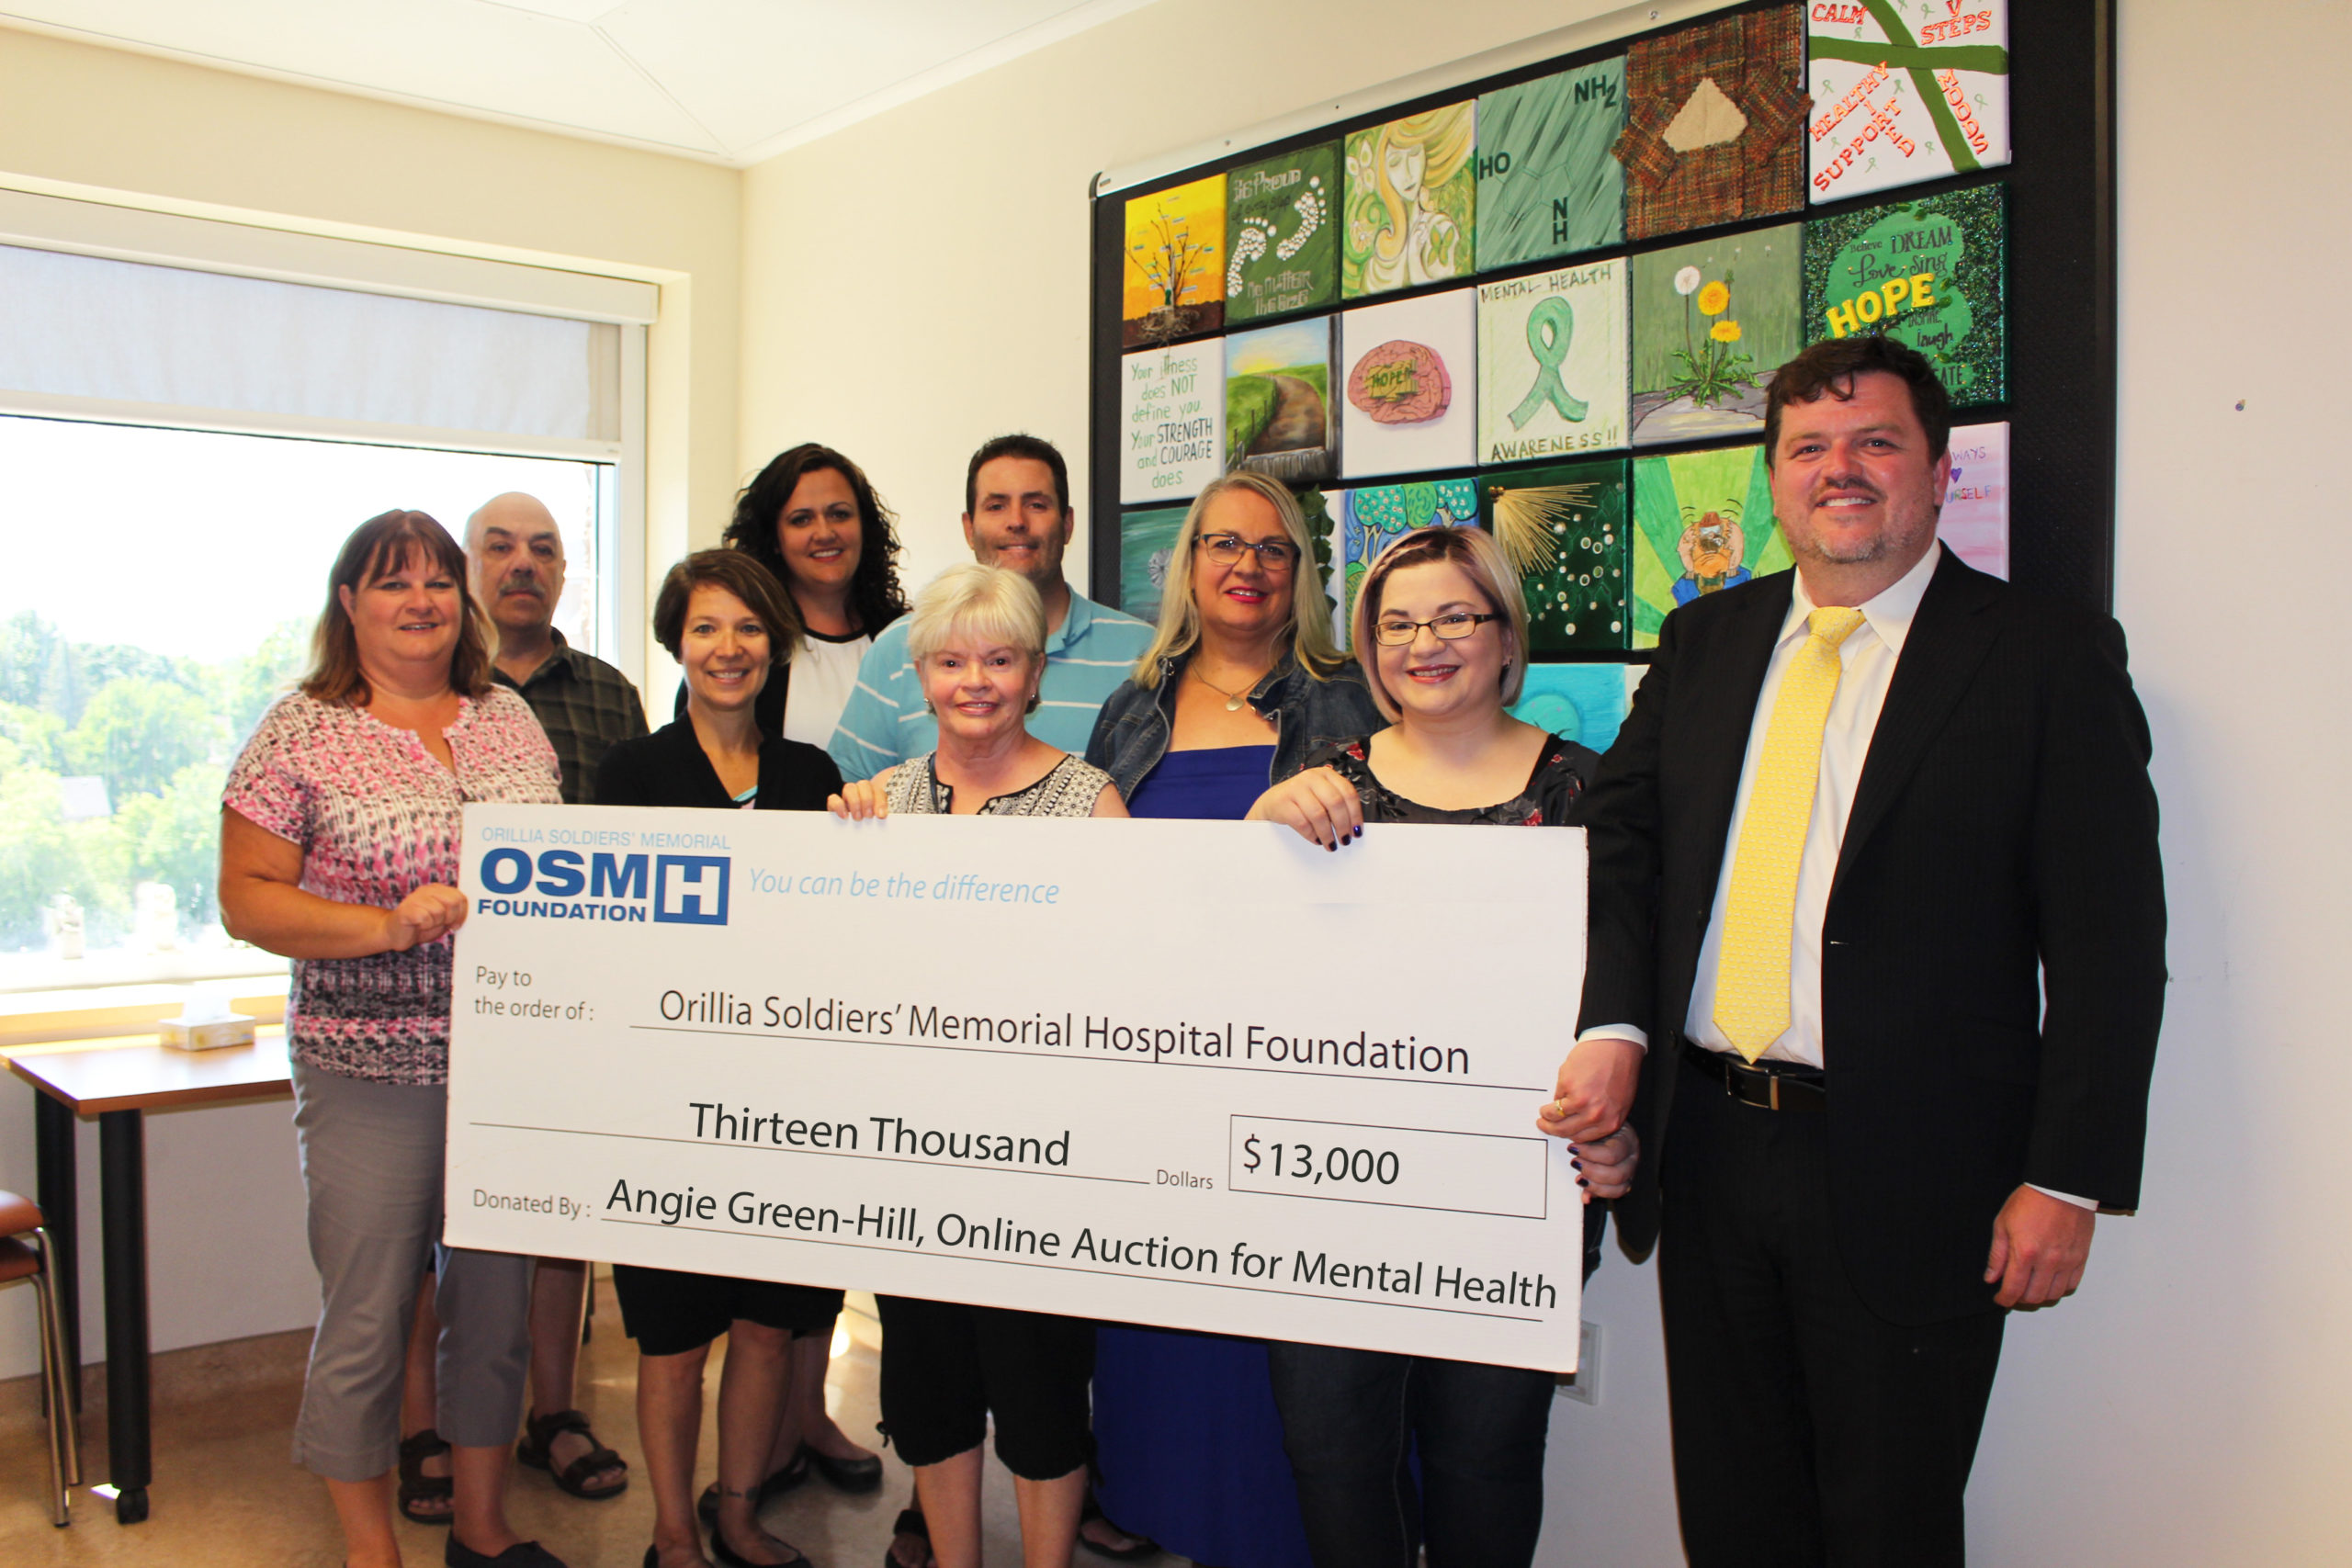 OSMH Mental Health Outpatient Donation Photo